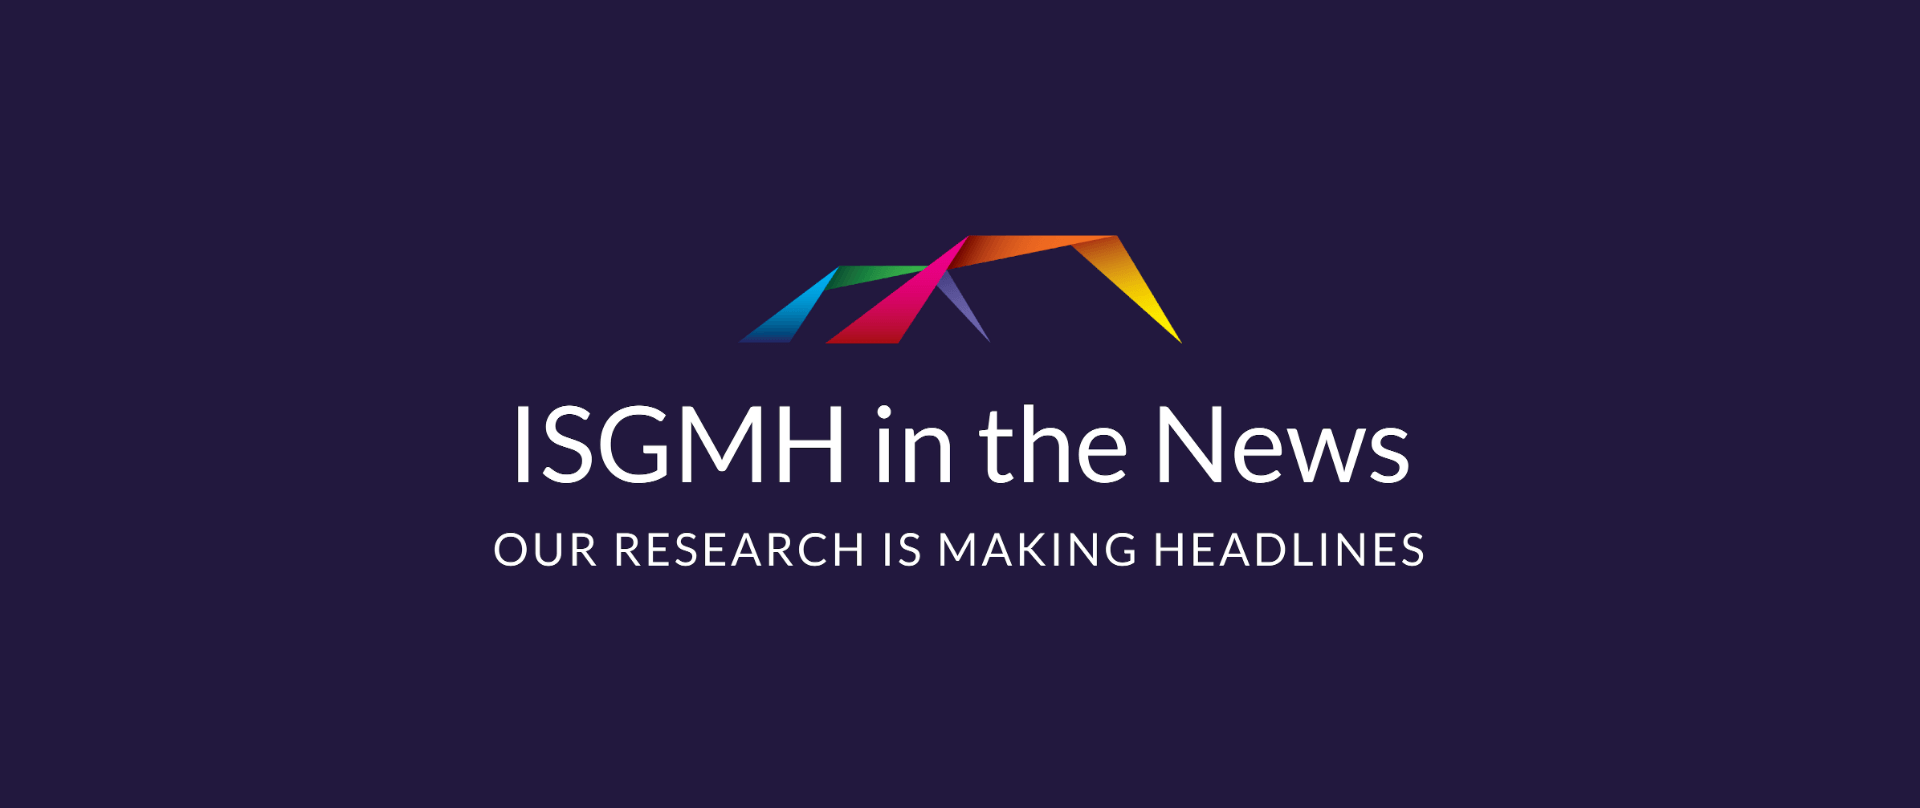 ISGMH's research has made the headlines - read about us in the news.